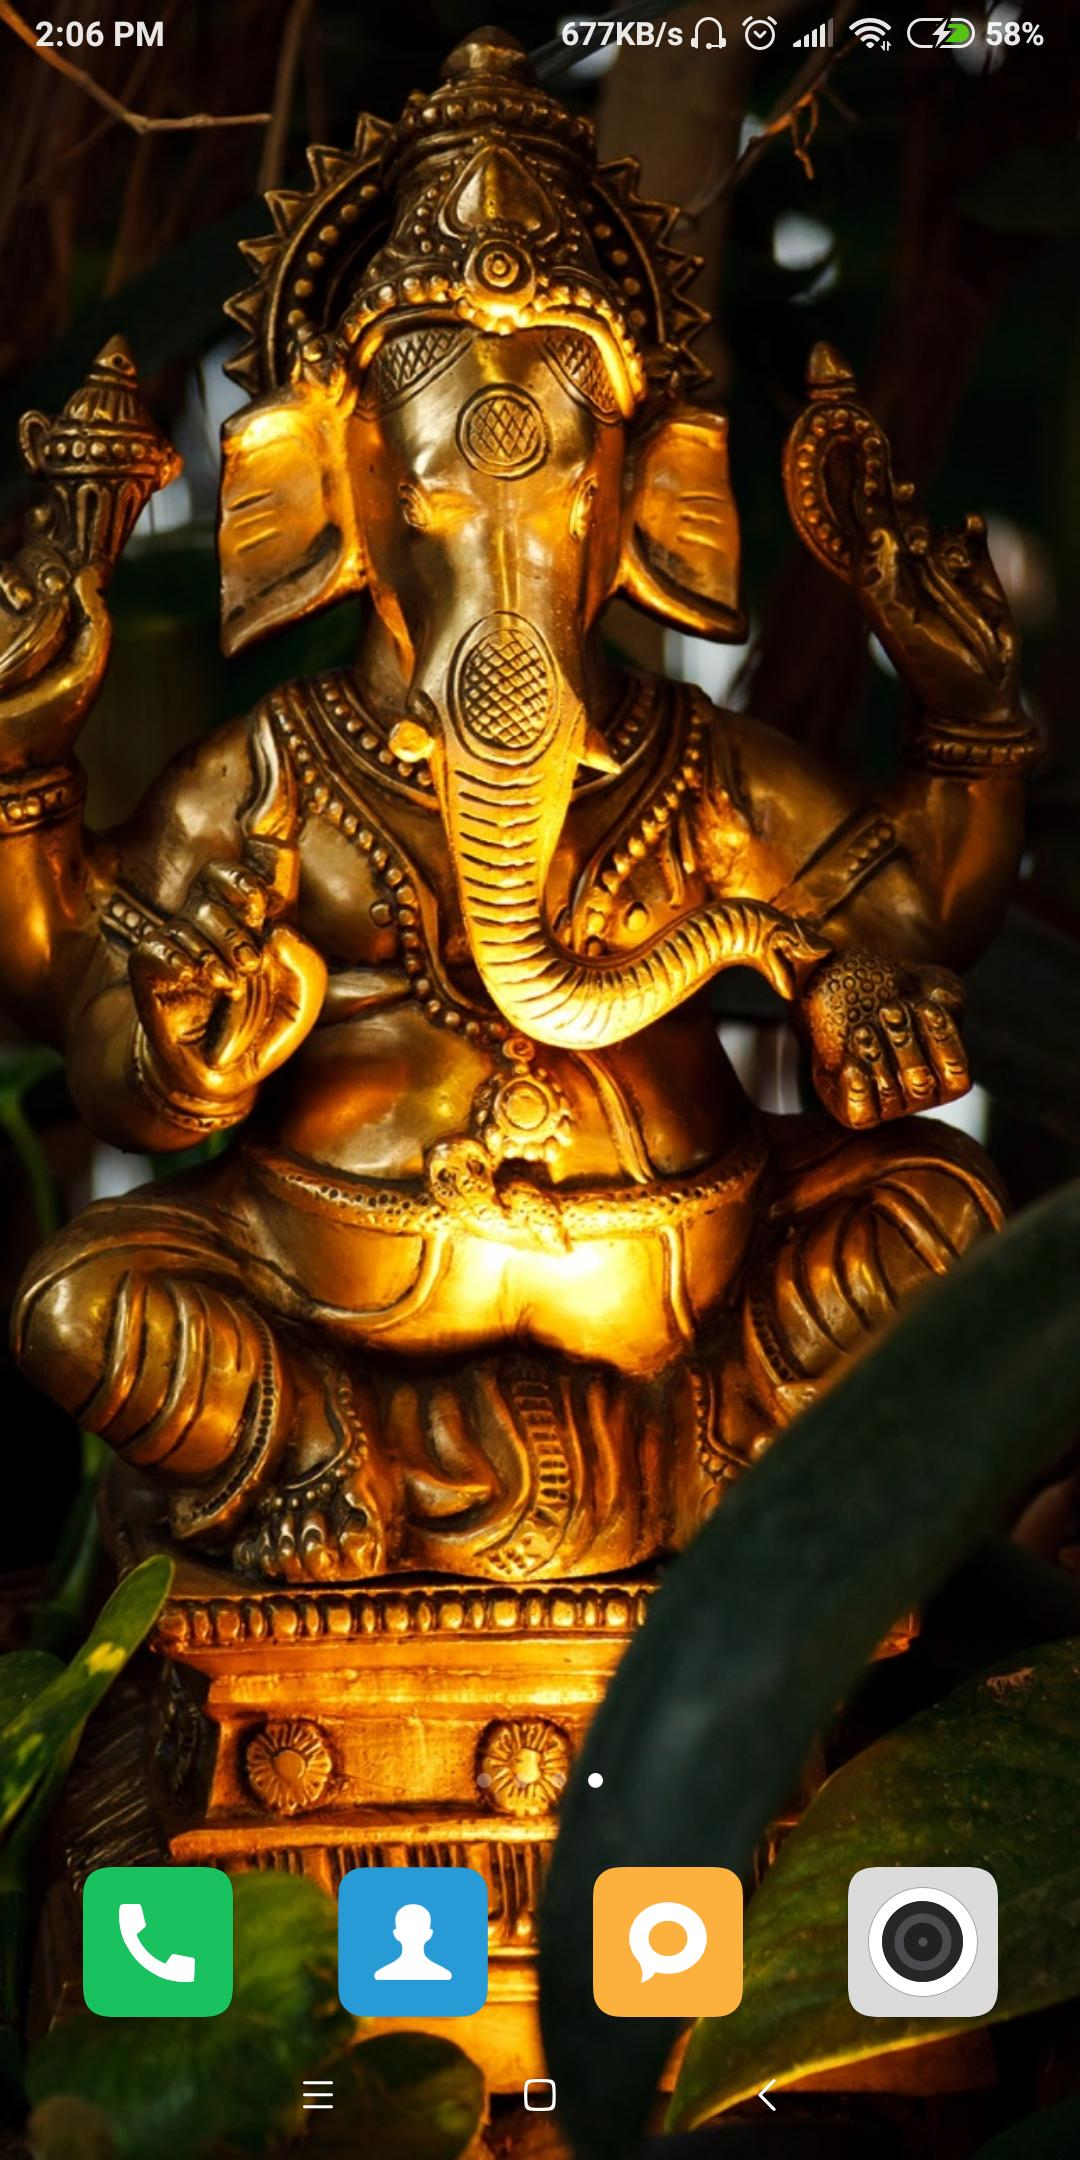 Ganesha Wallpaper for Android - APK Download